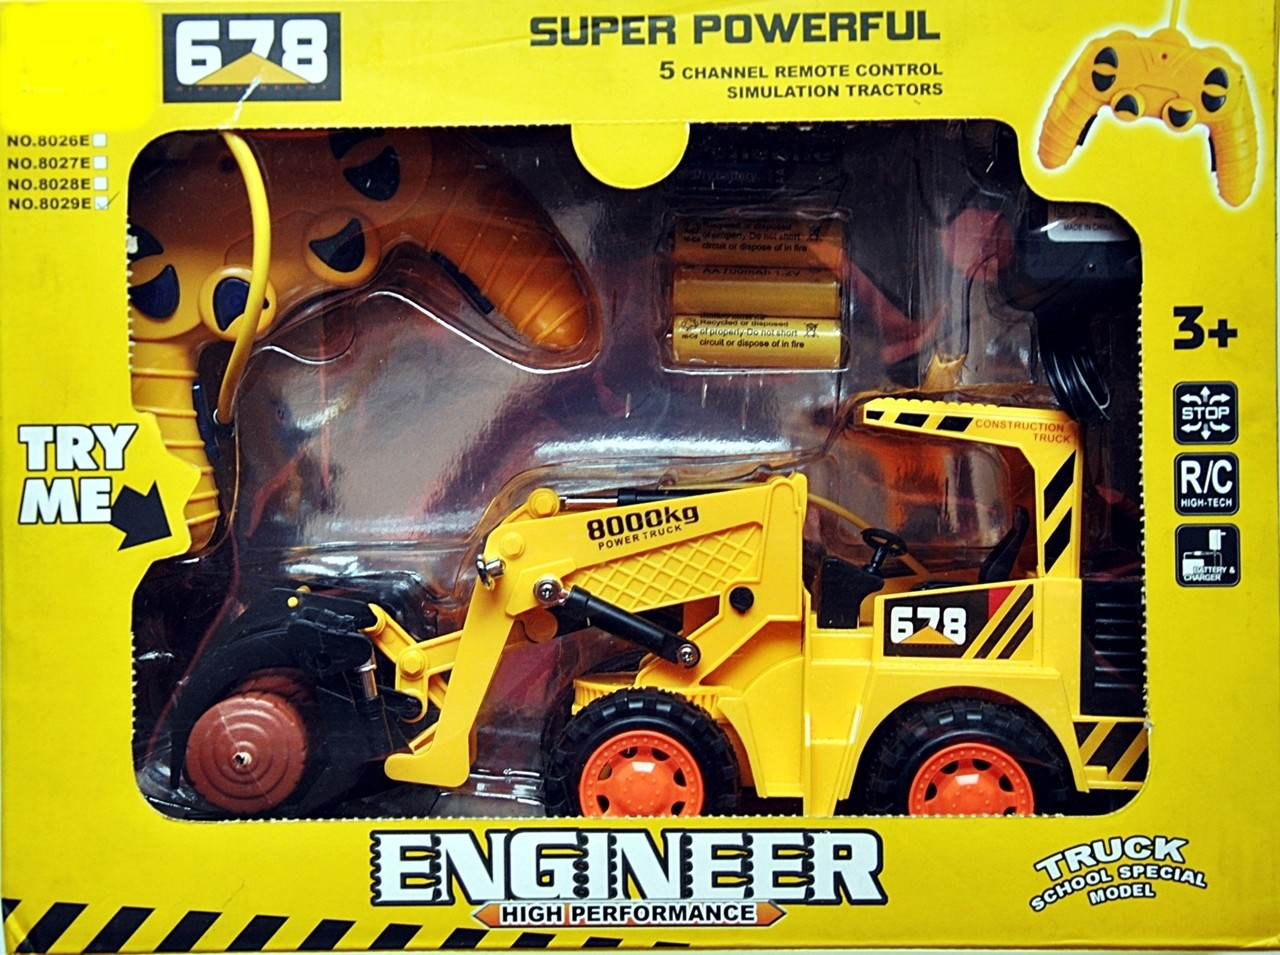 Toys Remote Control Hot Price Drops Toy Car Circuit Ruppiee Shoppiee Engineer High Performance Jcbyellow Was 1450 Now 1080